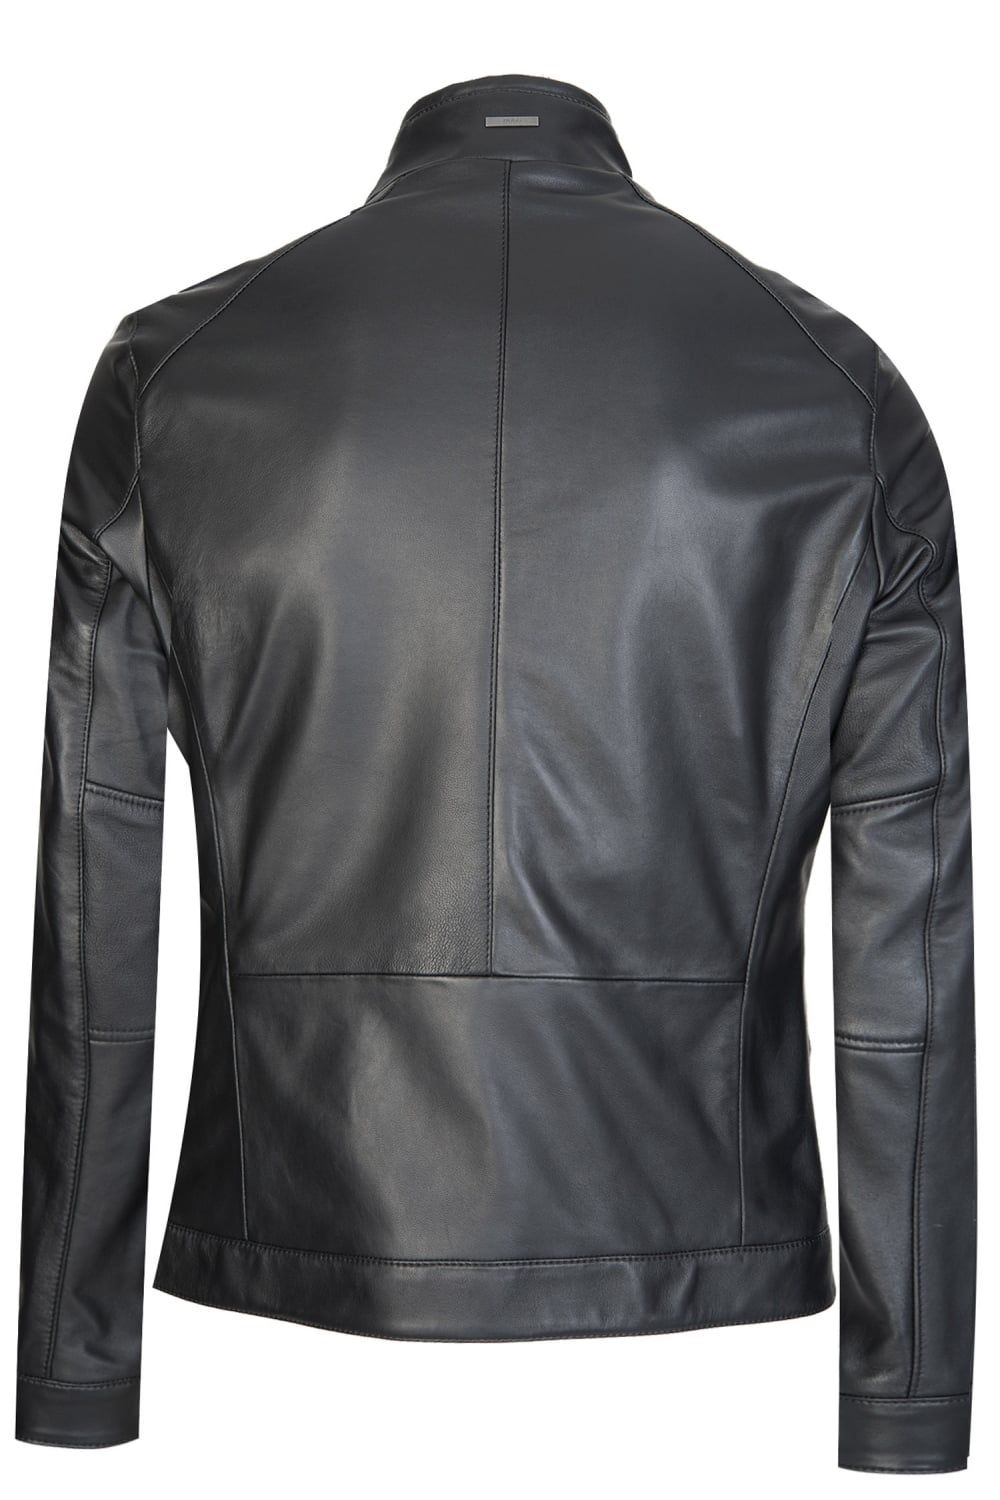 hugo boss nokam leather jacket. Black Bedroom Furniture Sets. Home Design Ideas